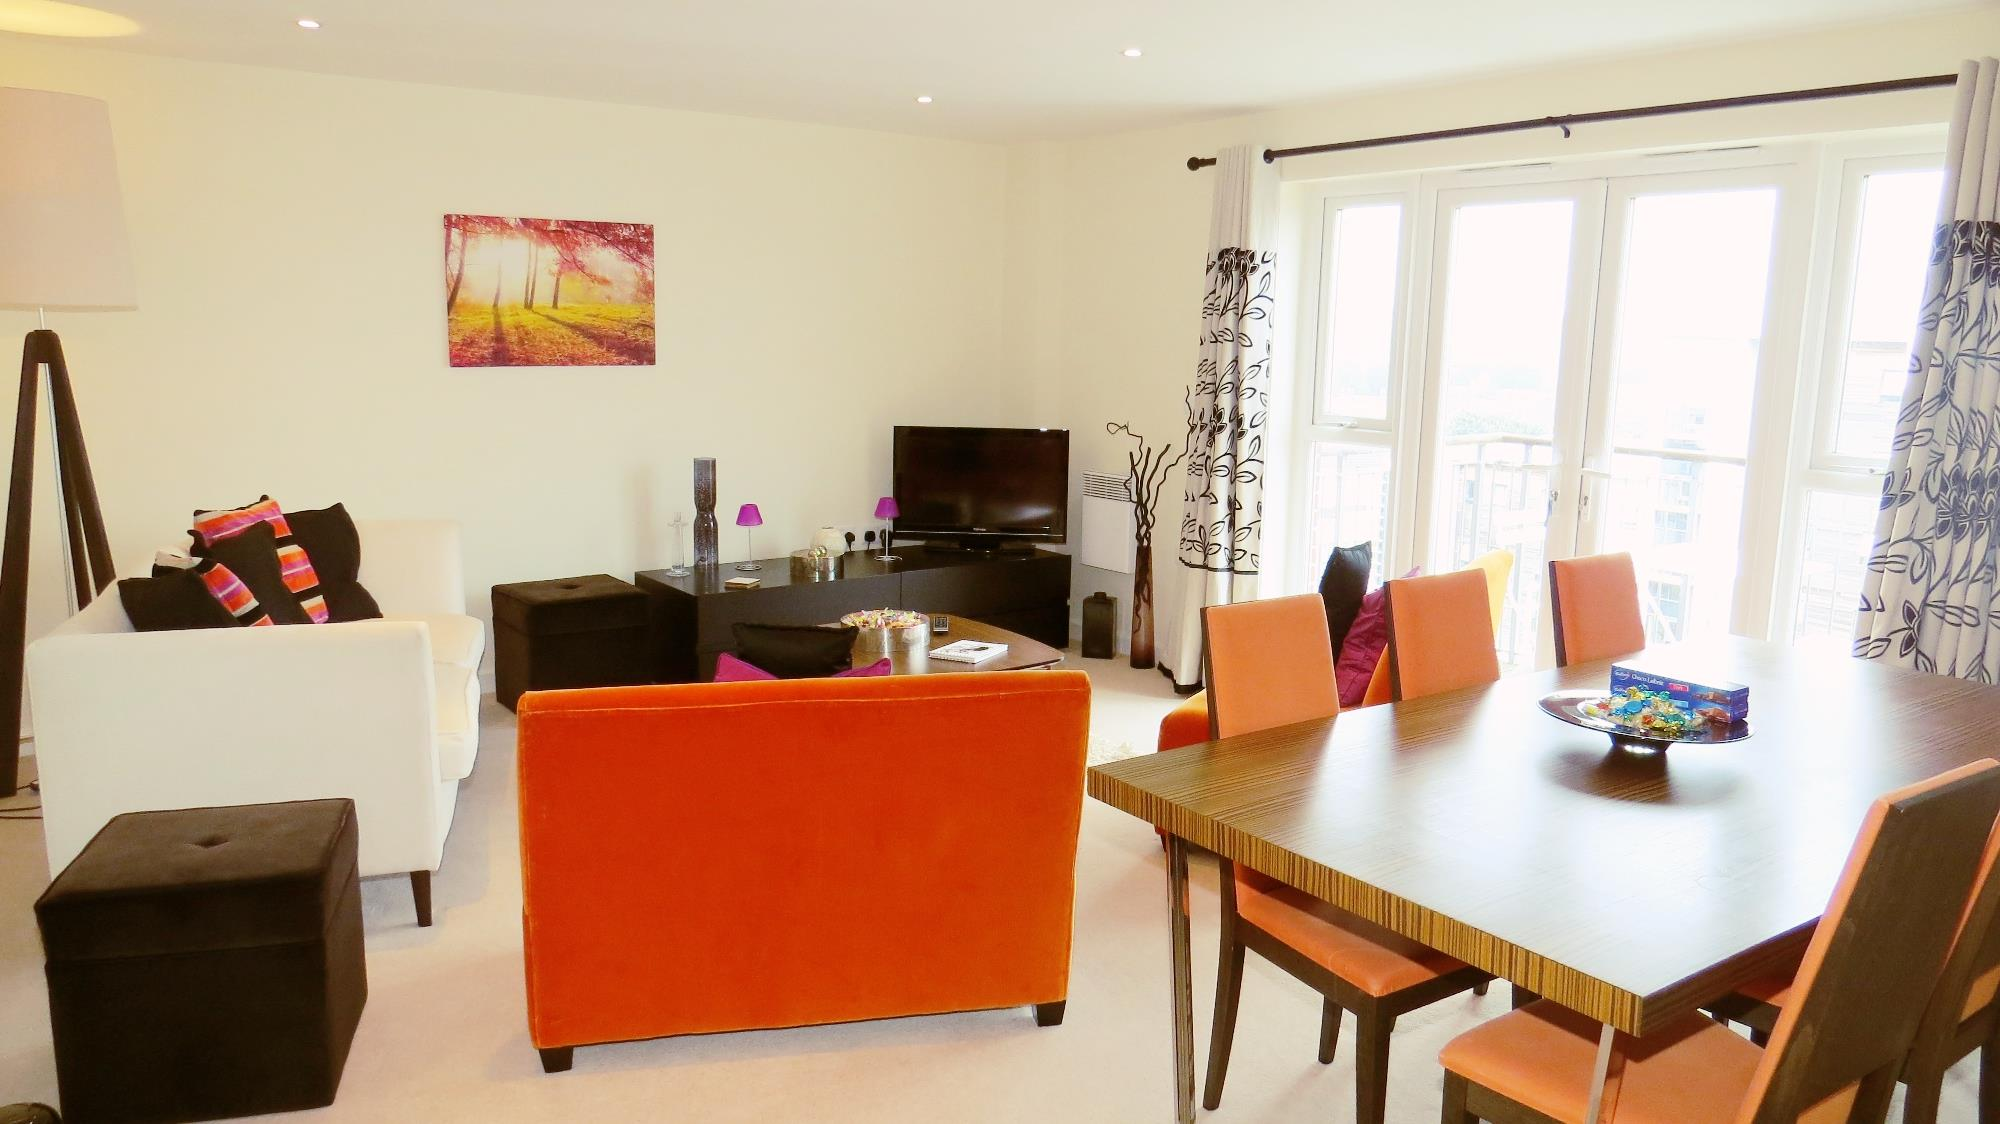 LUXURY FLAT FOR SALE IN POOLE REDUCED!